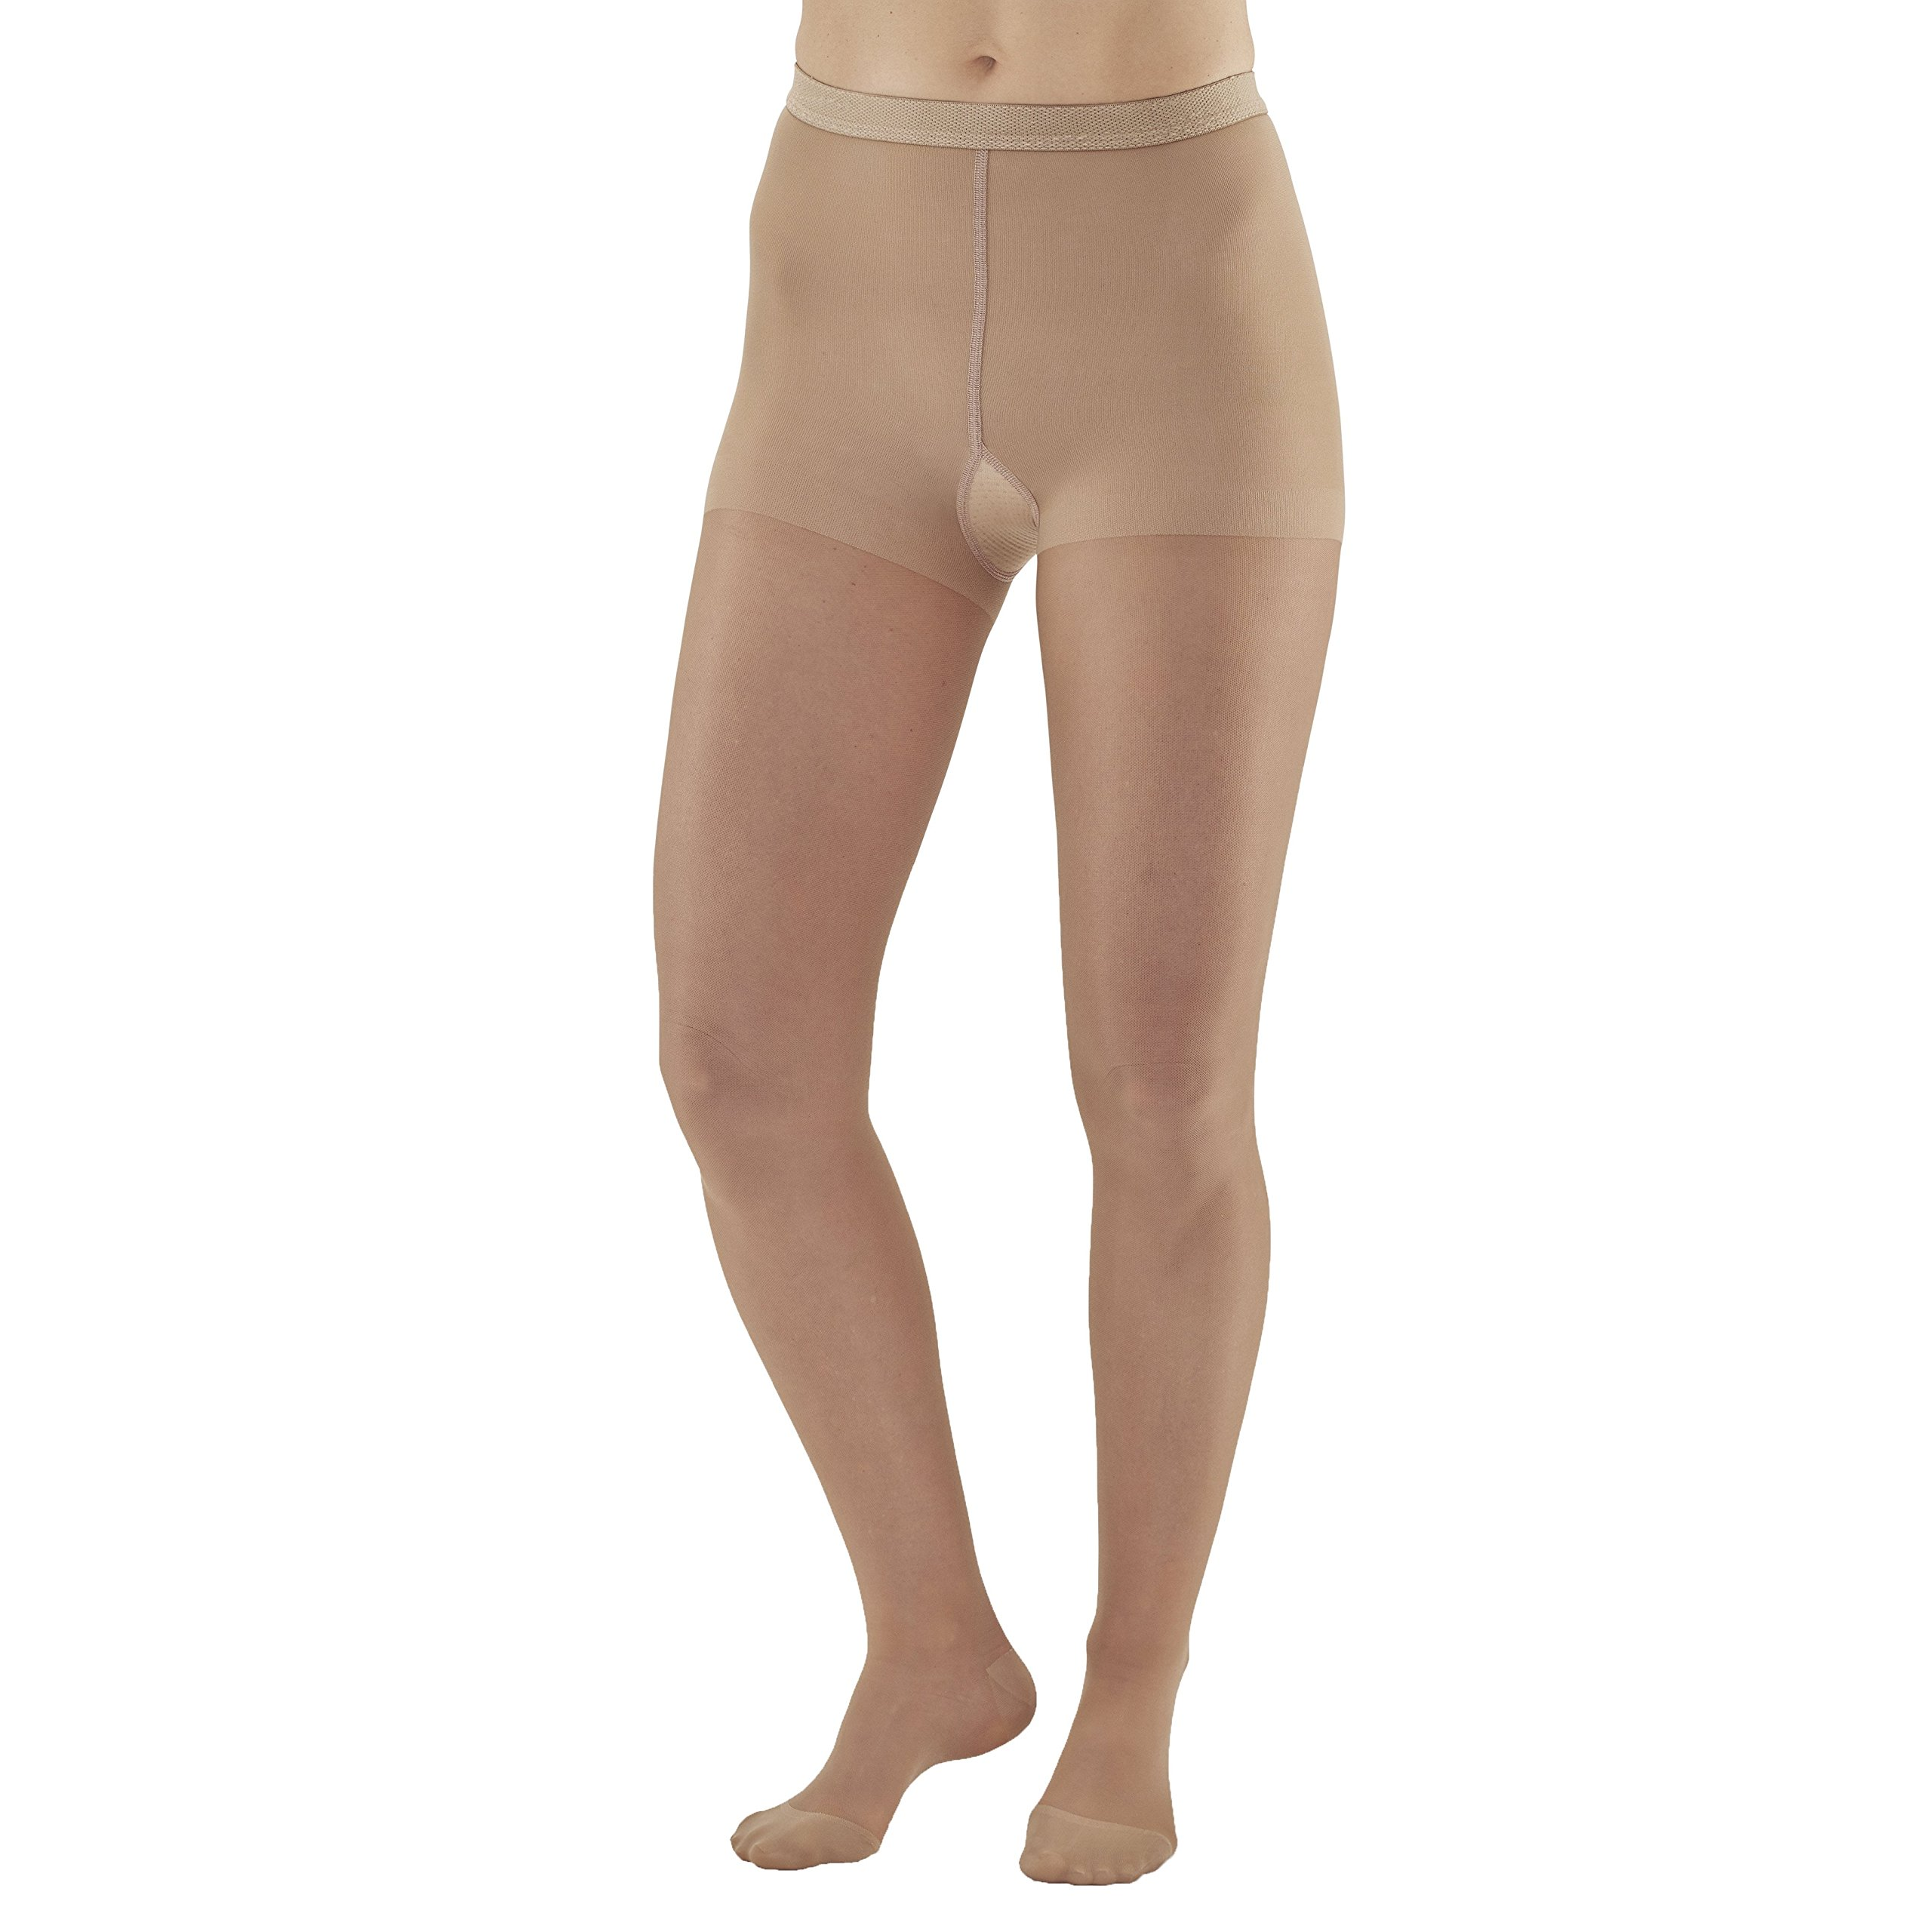 Ames Walker Women's AW Style 15 Sheer Support Closed Toe Compression Pantyhose - 15-20 mmHg Light Beige Queen Plus 15-QP LT BEIGE Nylon/Spandex